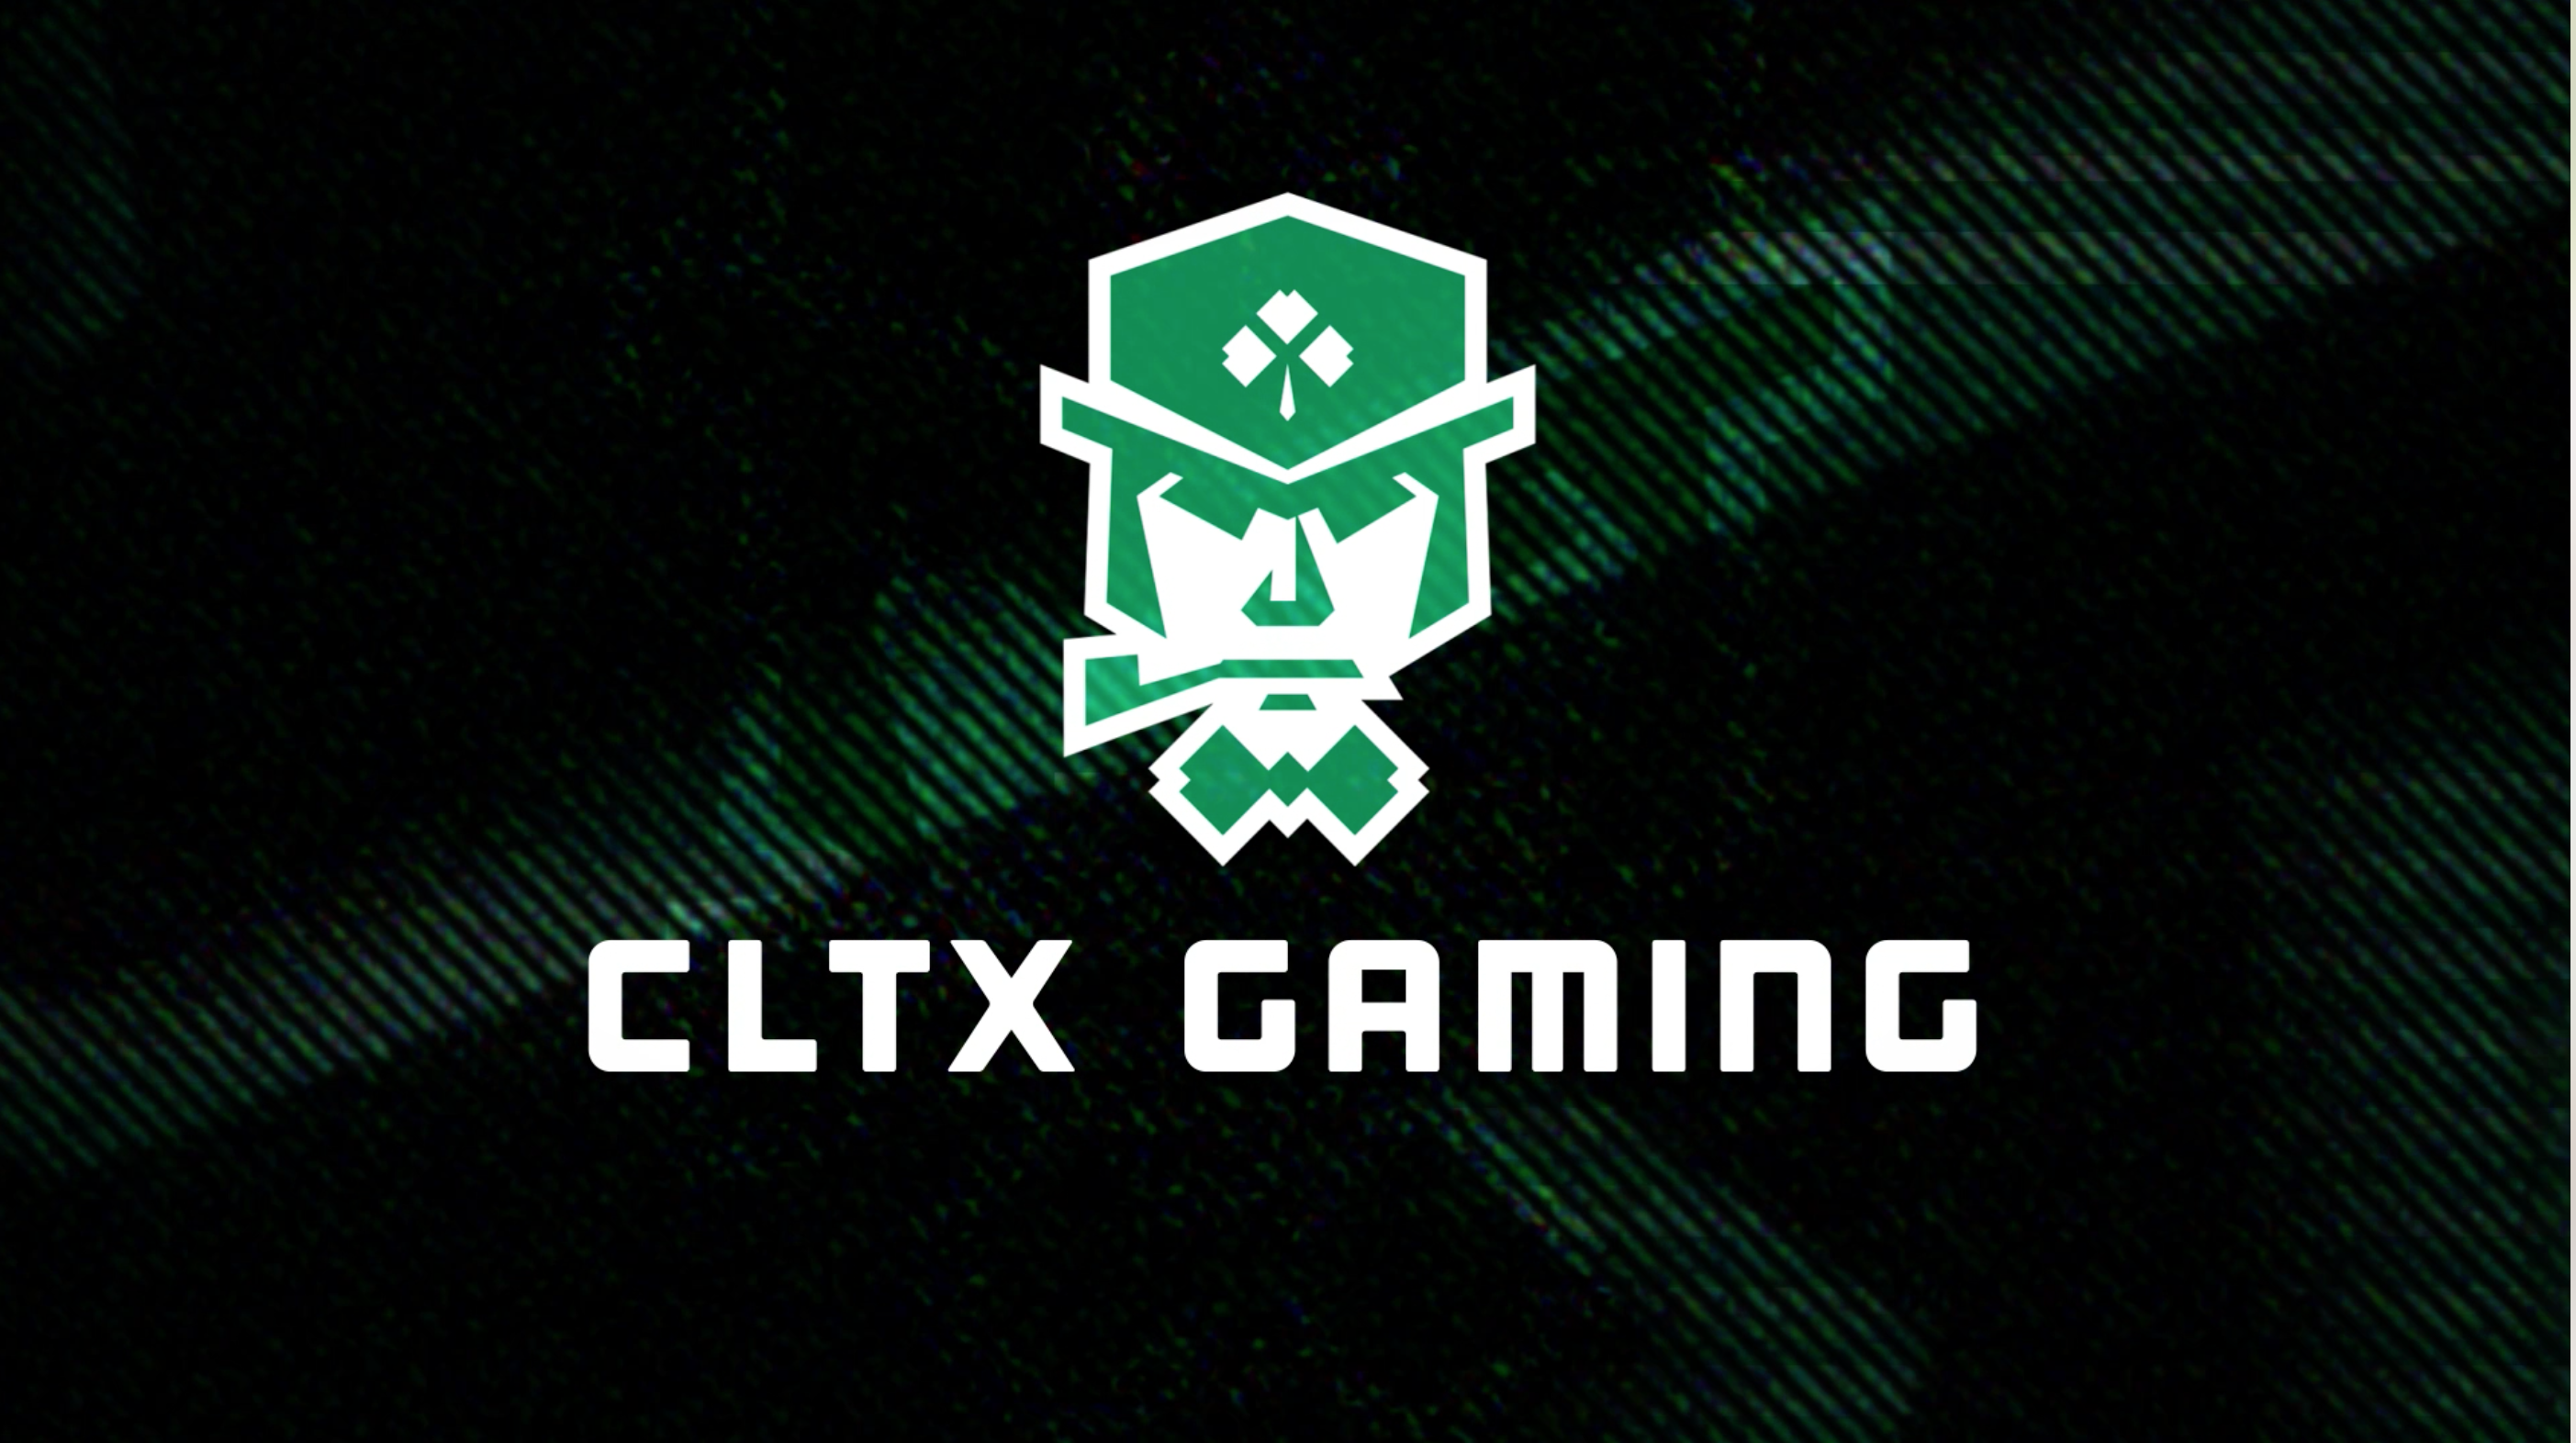 CLTX Logo lock up